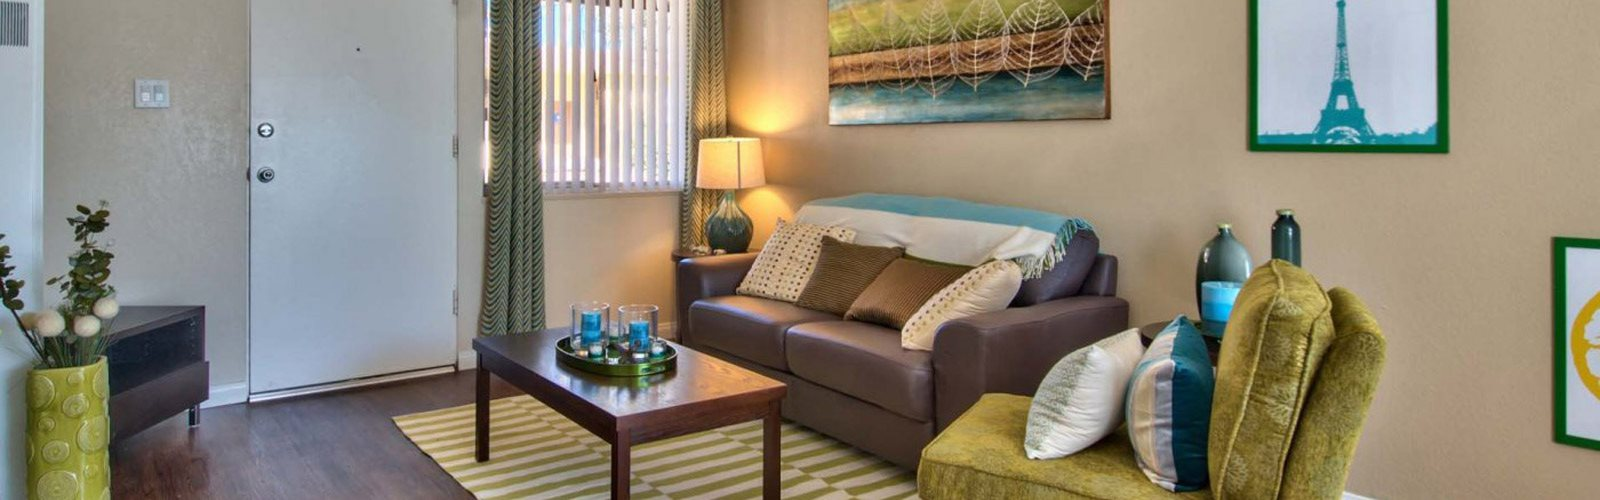 Ontario, Ca 91761 Apts for rent l The Casitas Apartments